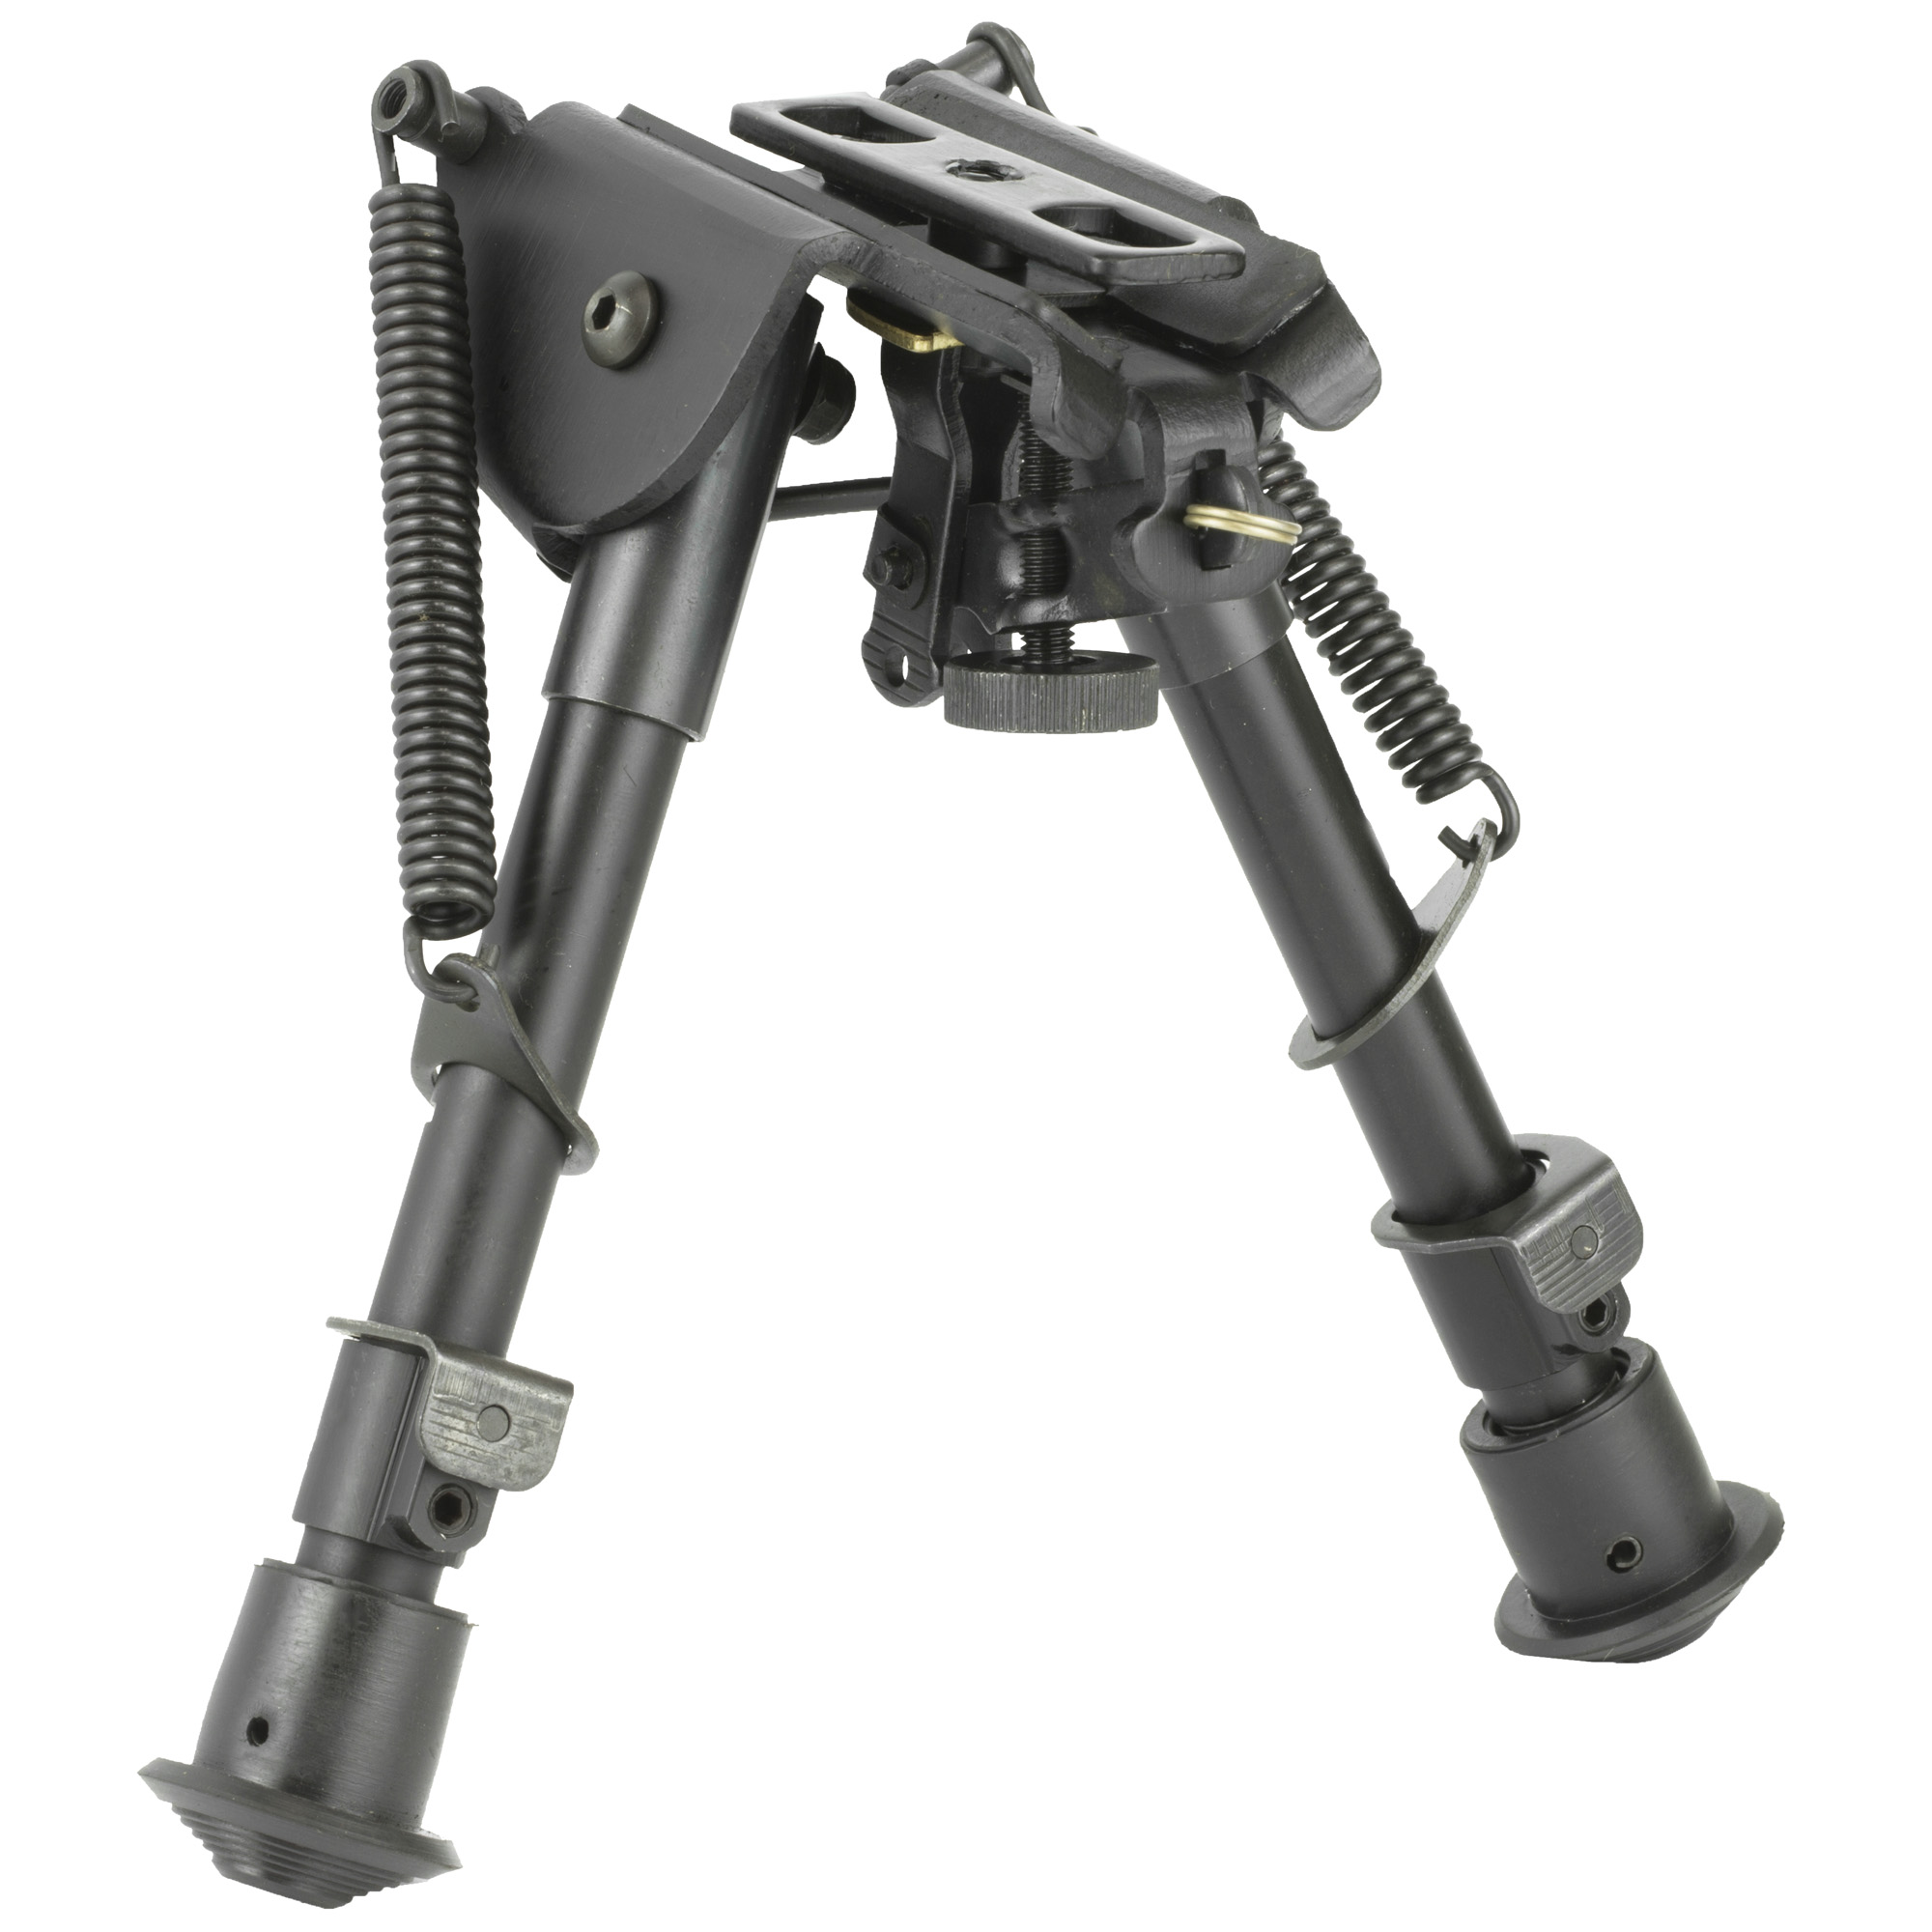 "This compact size precision grade bipod with notched legs mounts directly onto most sling swivel studs. It includes three adapters for flexible installation. An AR-15 GI handguard adapter"" universal rifle barrel mount and Weaver/Picatinny type rail adapter with sling stud"